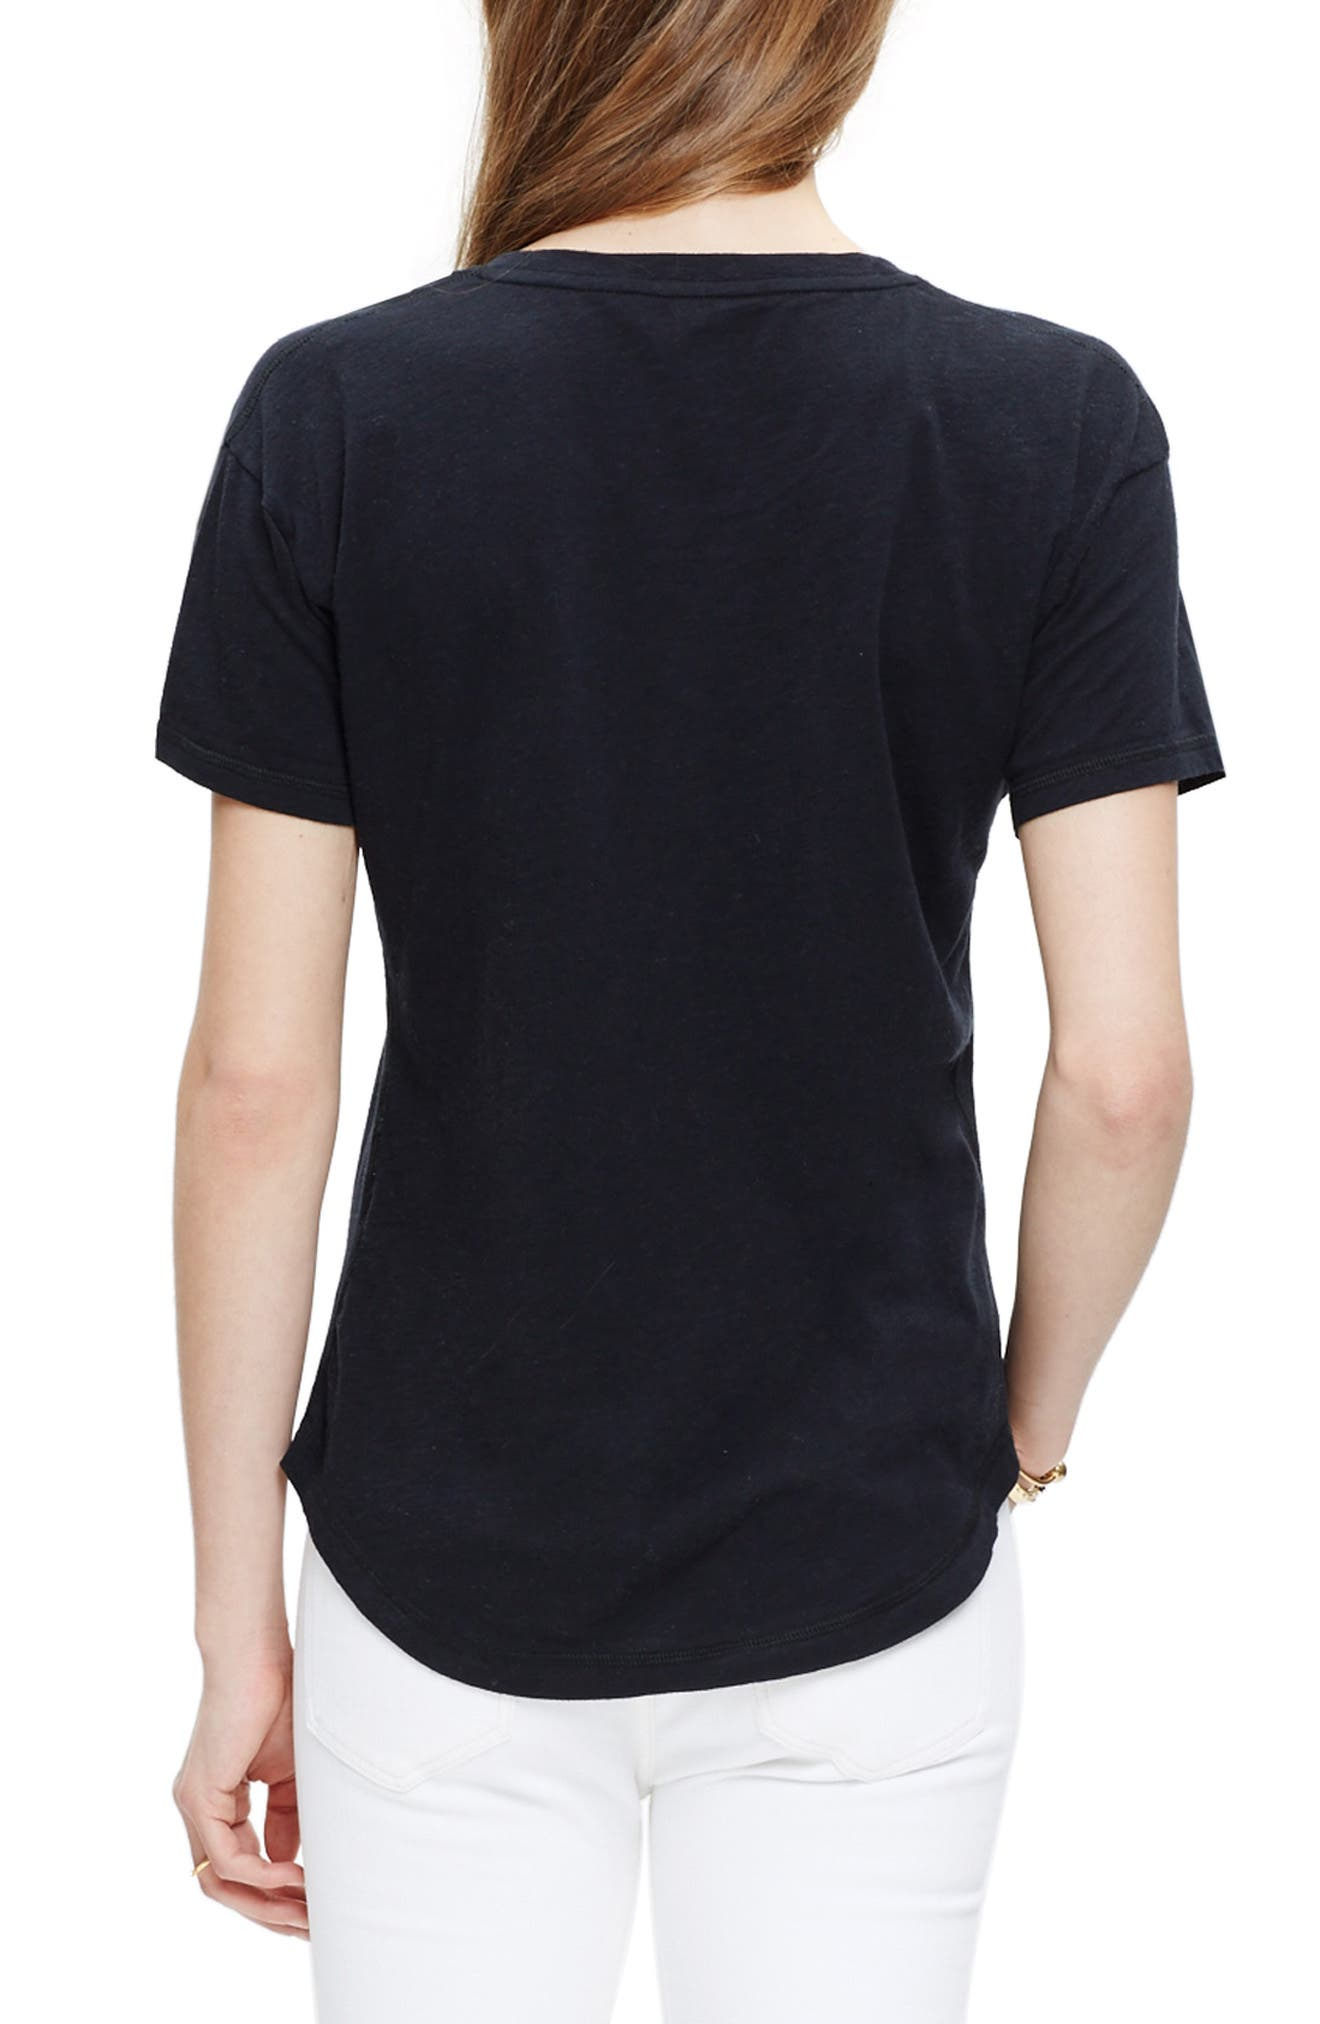 MADEWELL, 'Whisper' Cotton Crewneck Tee, Alternate thumbnail 2, color, TRUE BLACK